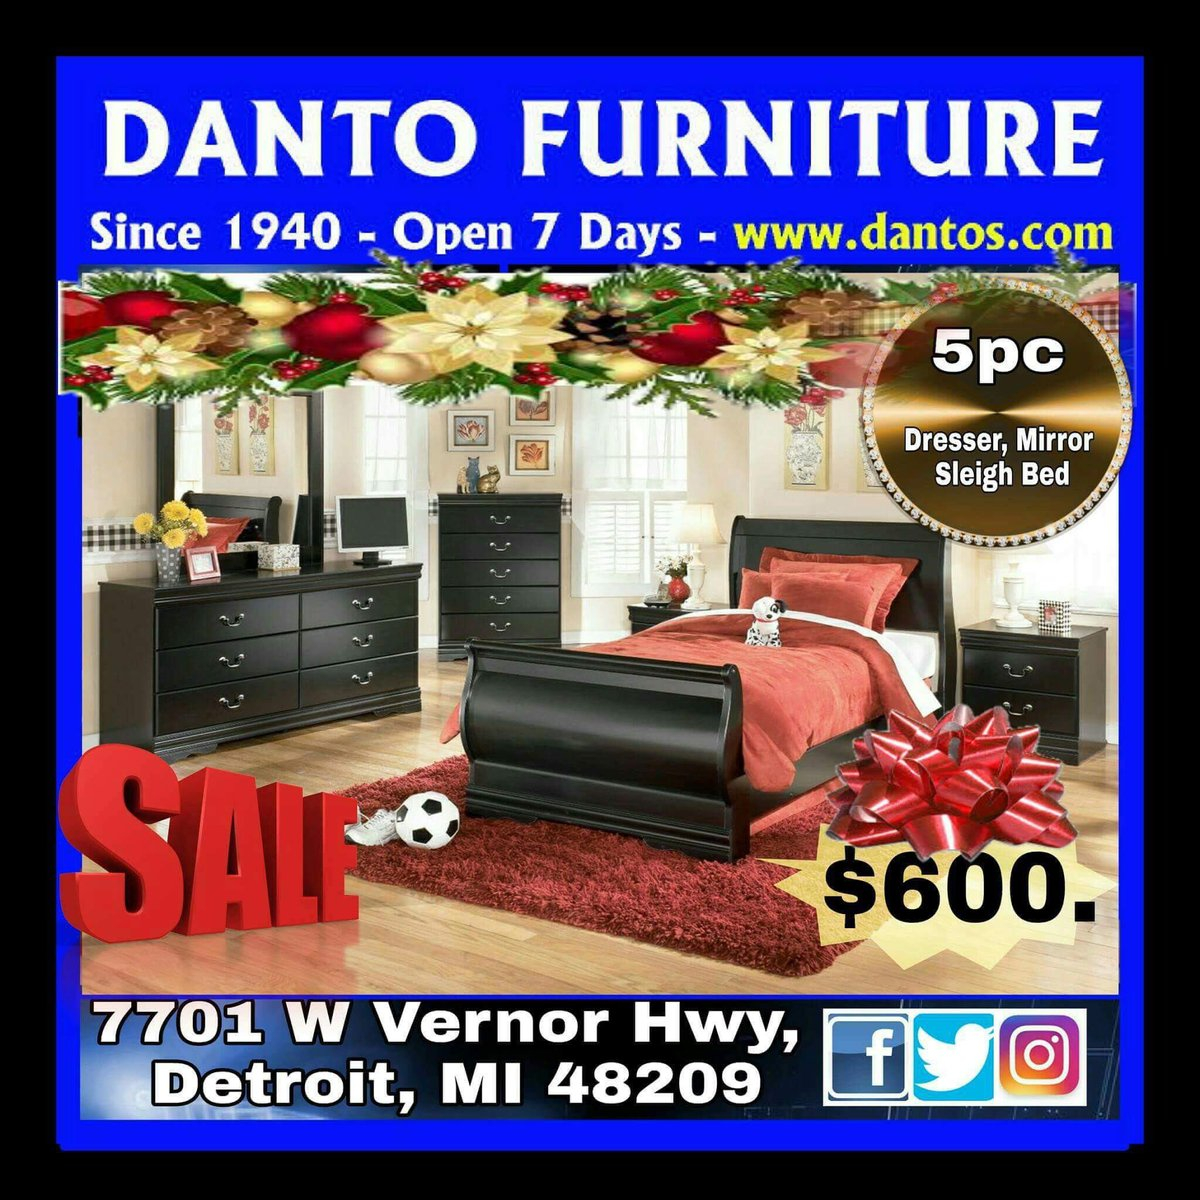 Danto Furniture On Twitter Stop Danto Furniture Where The Sales with regard to Living Room Sets Under 600